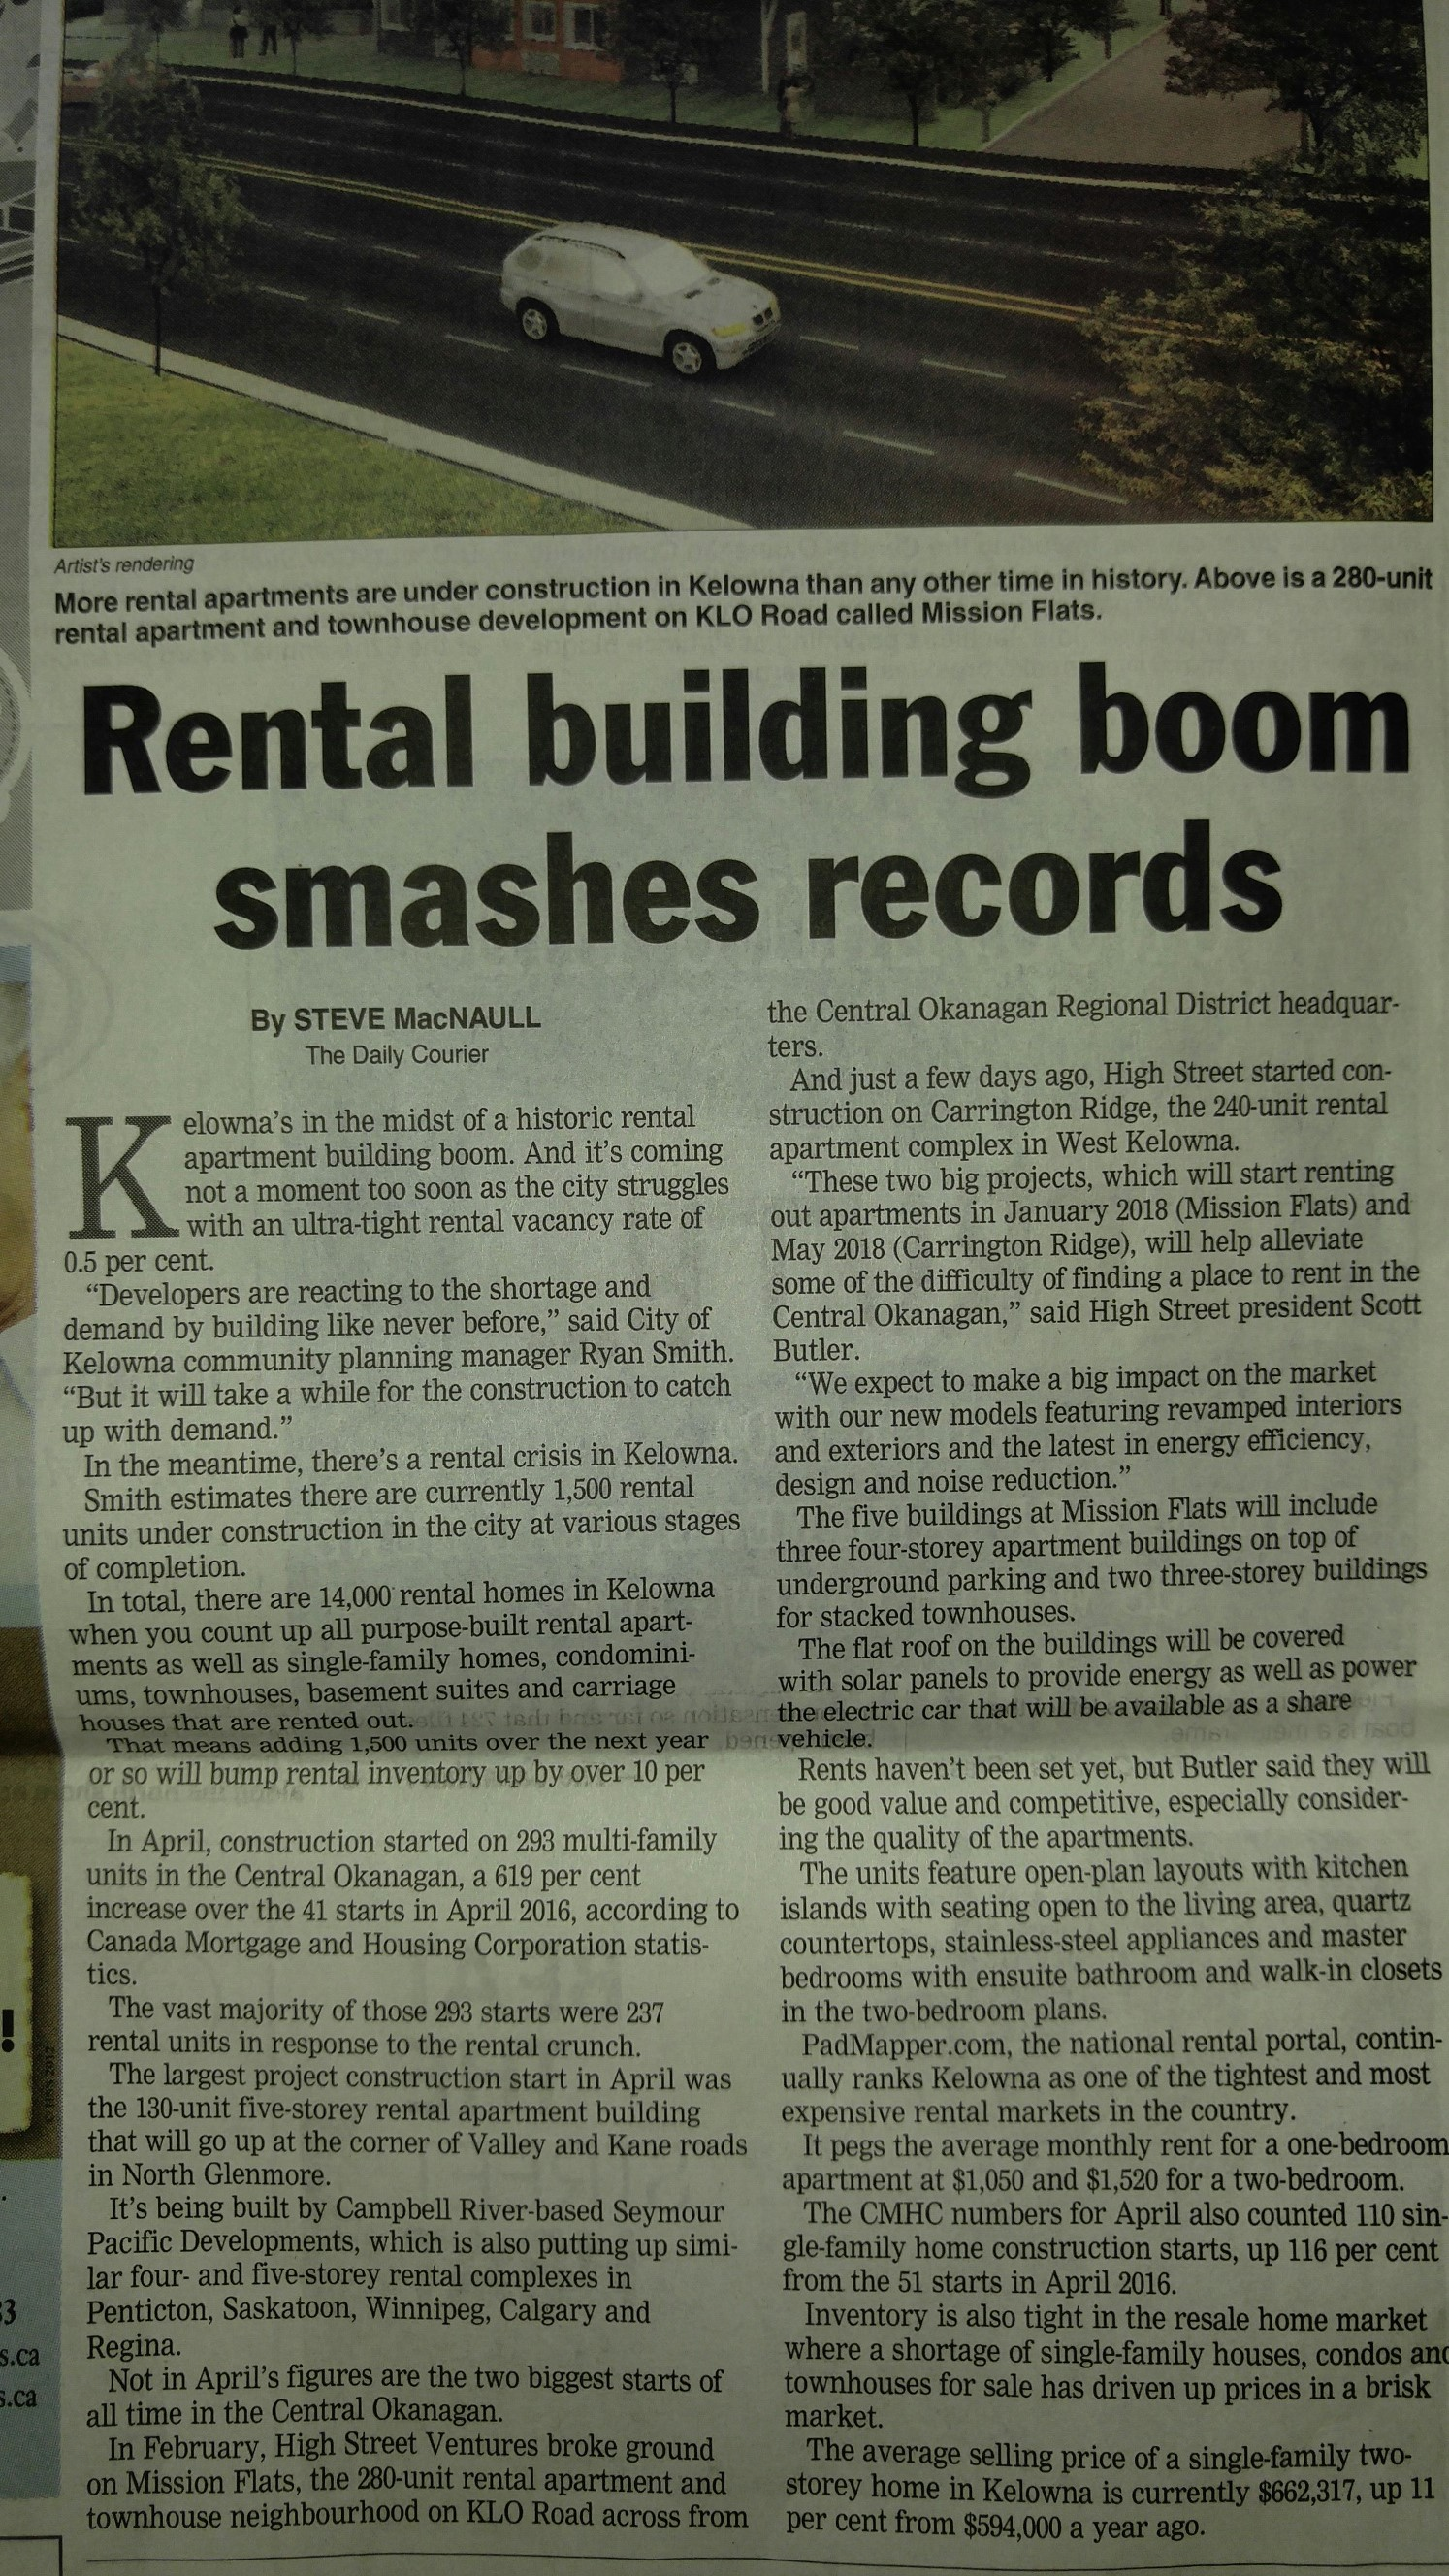 Rental Building Boom in Kelowna